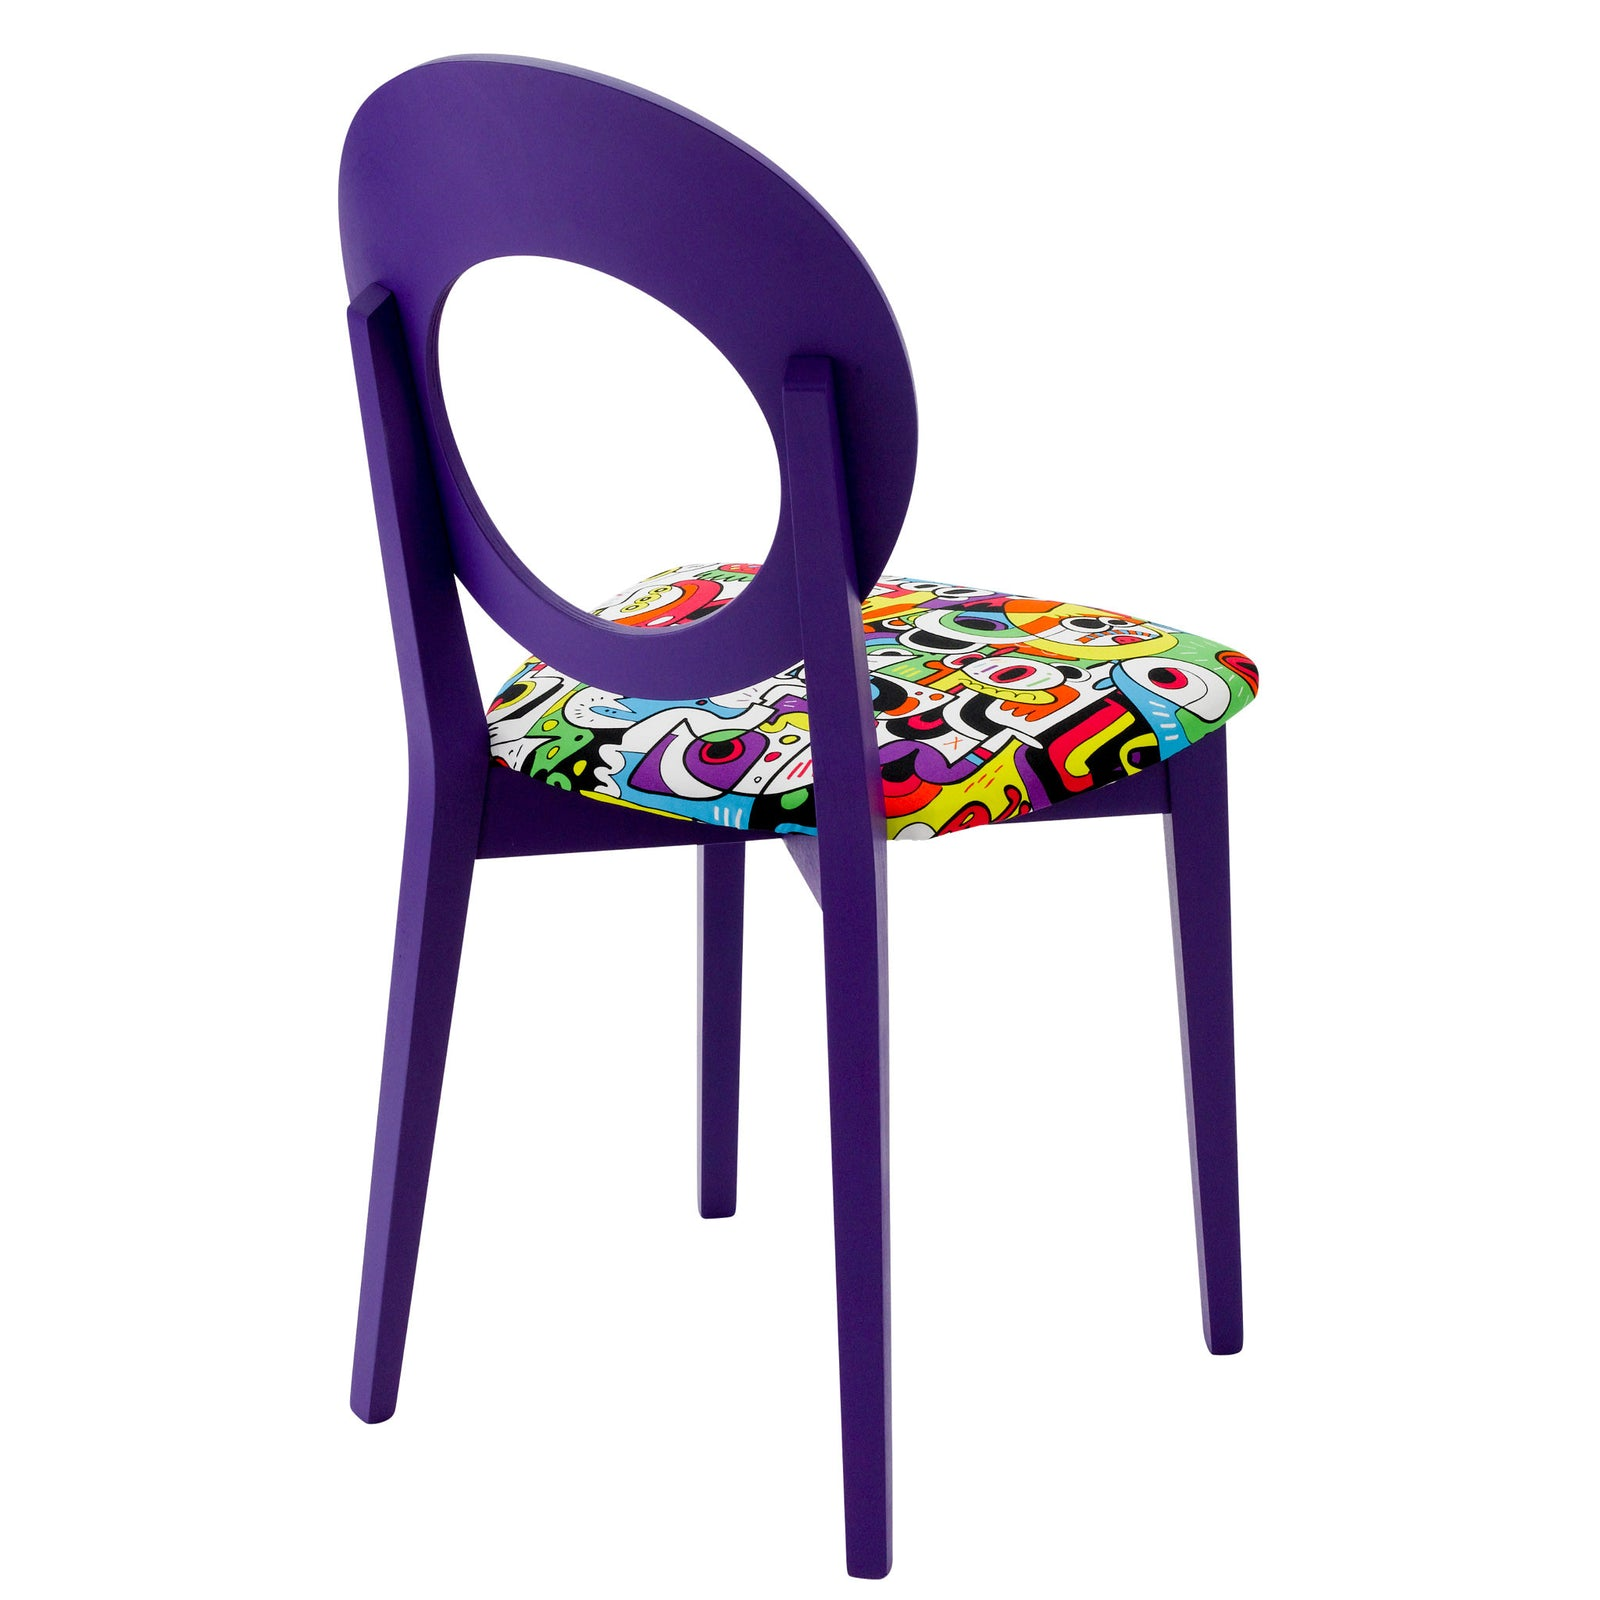 Rear view of the Chloe designer dining chair painted purple upholstered in Frooty Tooty Tropical fabric by Jon Burgerman.